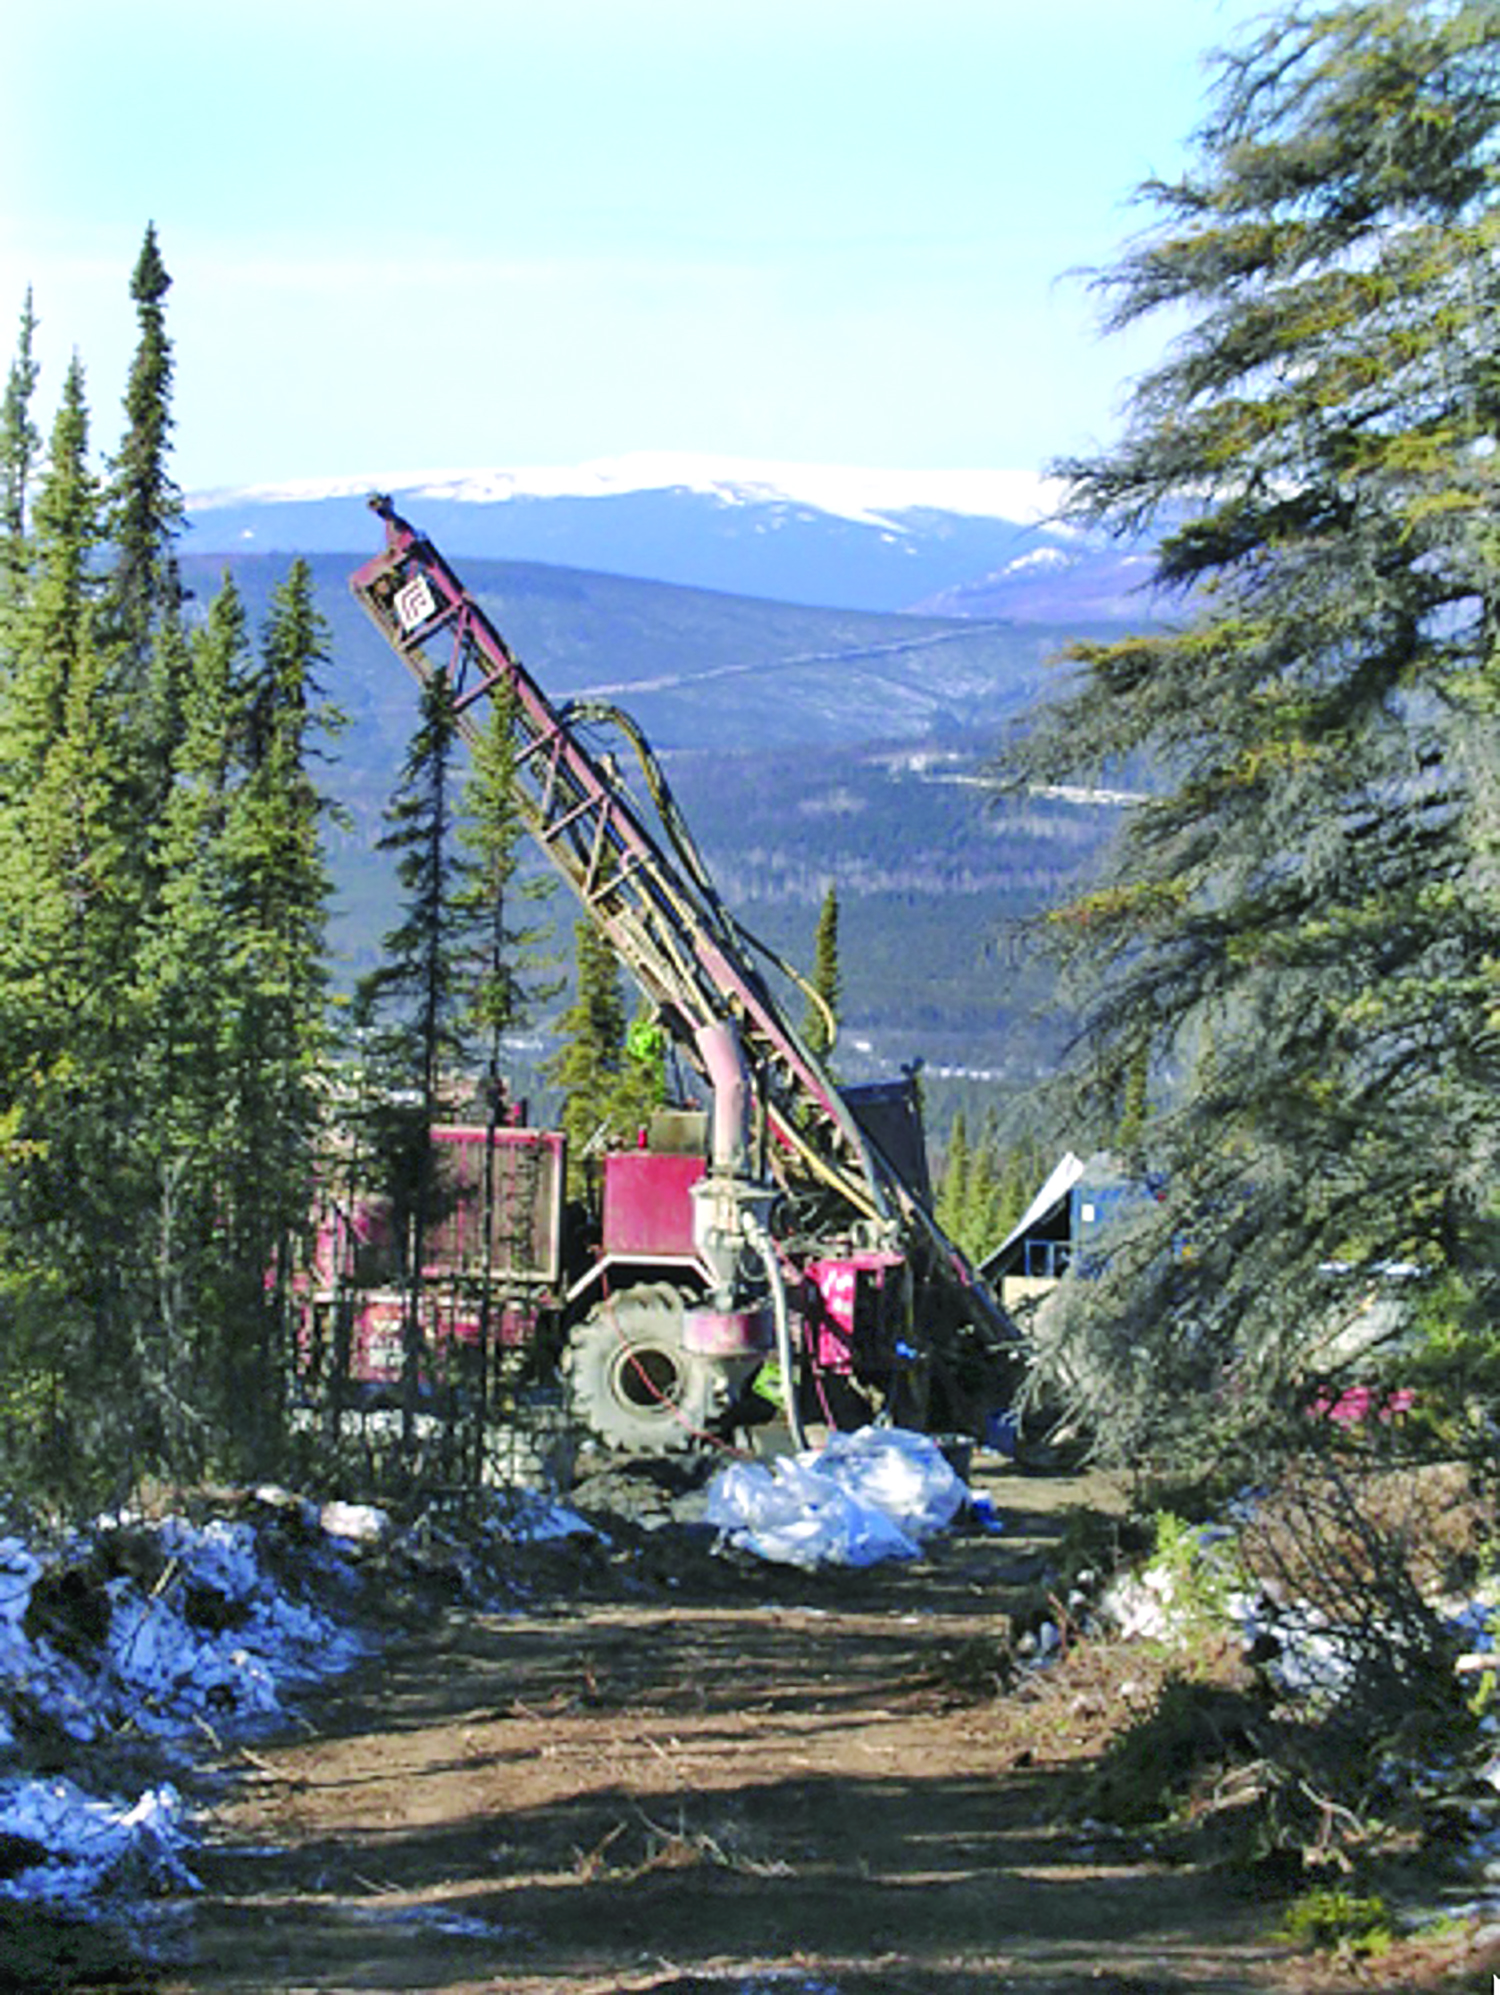 Exploration drilling at the Livengood gold project, 70 miles northwest of Fairbanks, Alaska. (Photo: International Tower Hill Mines)